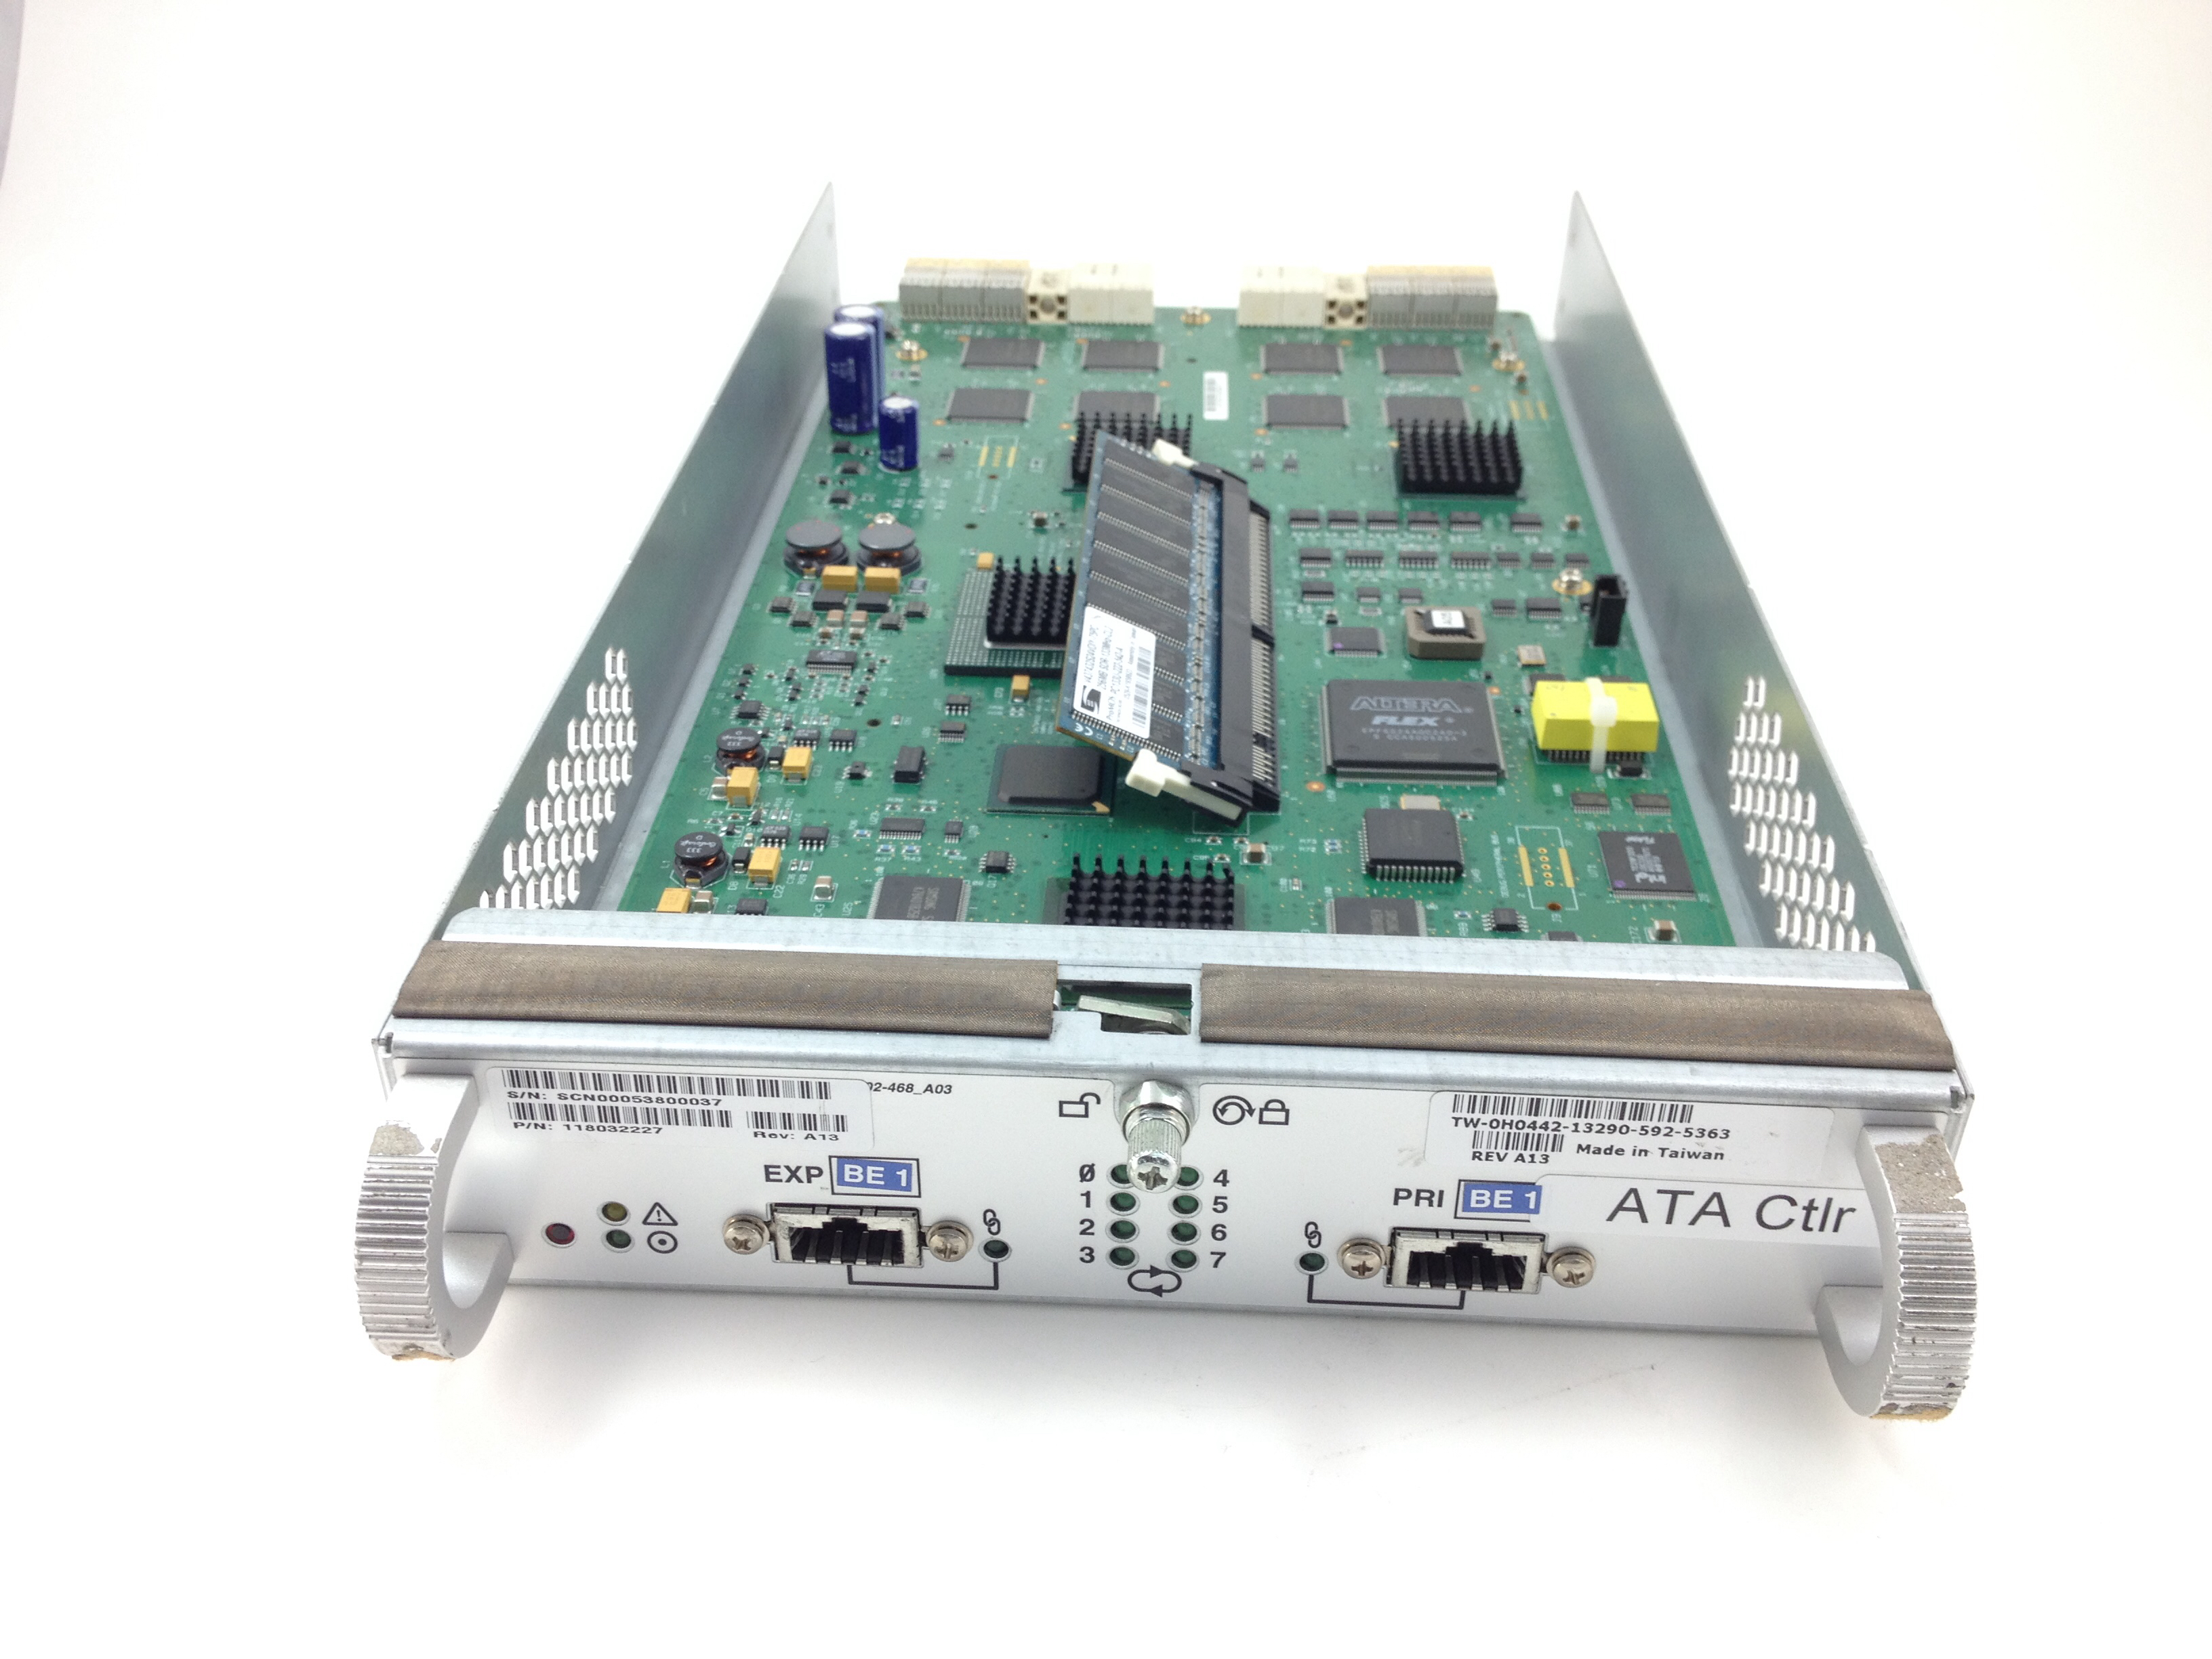 Dell EMC Ata Controller Card Board Rev A13 w/ 256MB RAM (H0442)